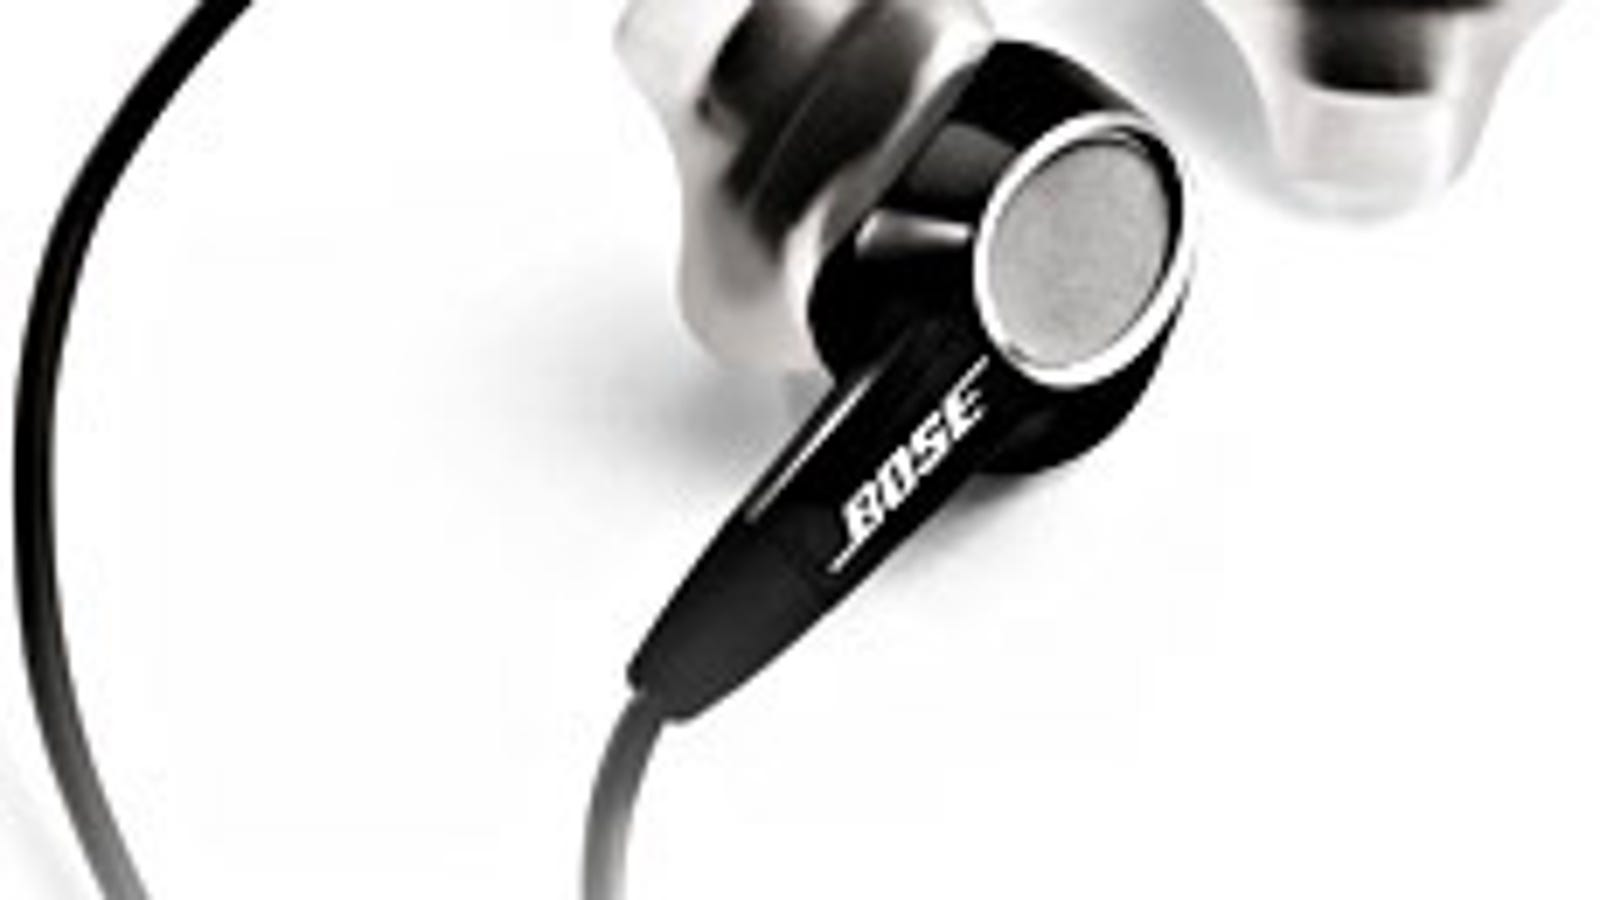 sony earbud cushions - Reader Review: Bose TriPort In-Ear Headphones (Verdict: I Paid $100 For This?)